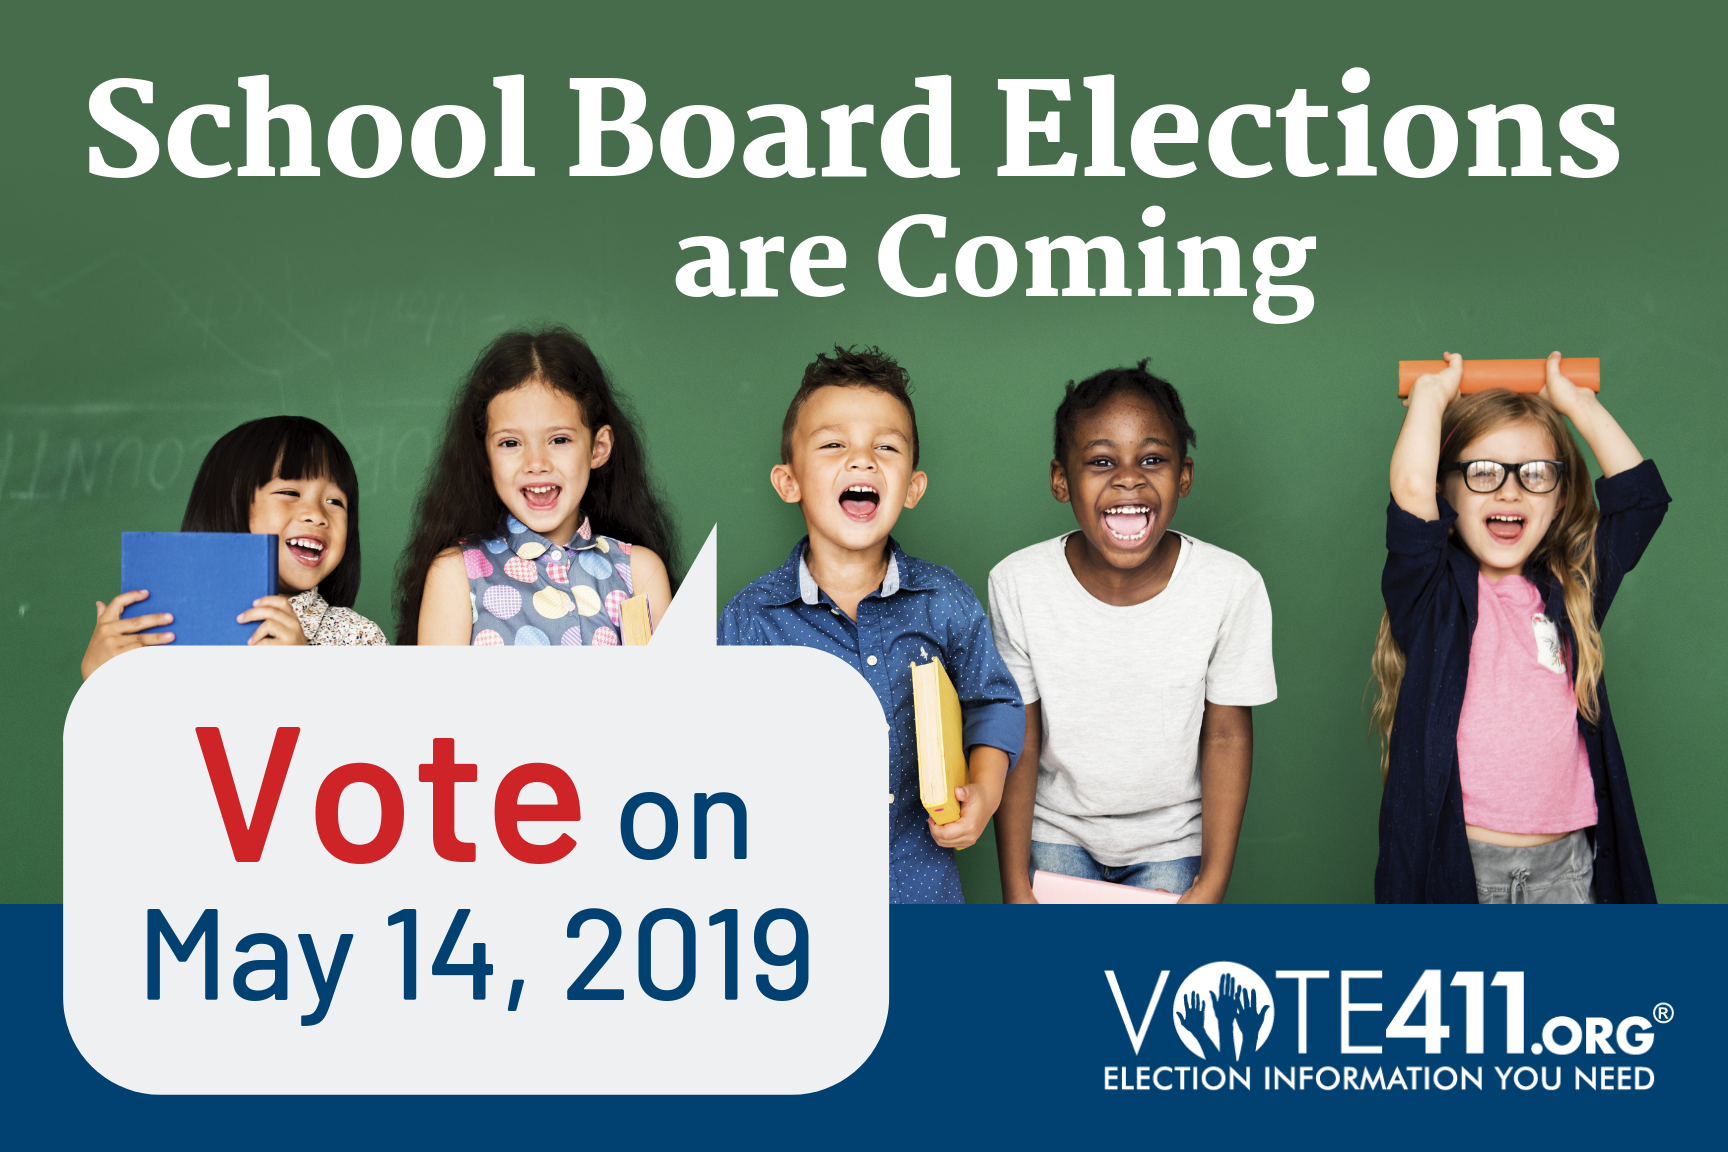 School board election are coming.  Vote on May 14th